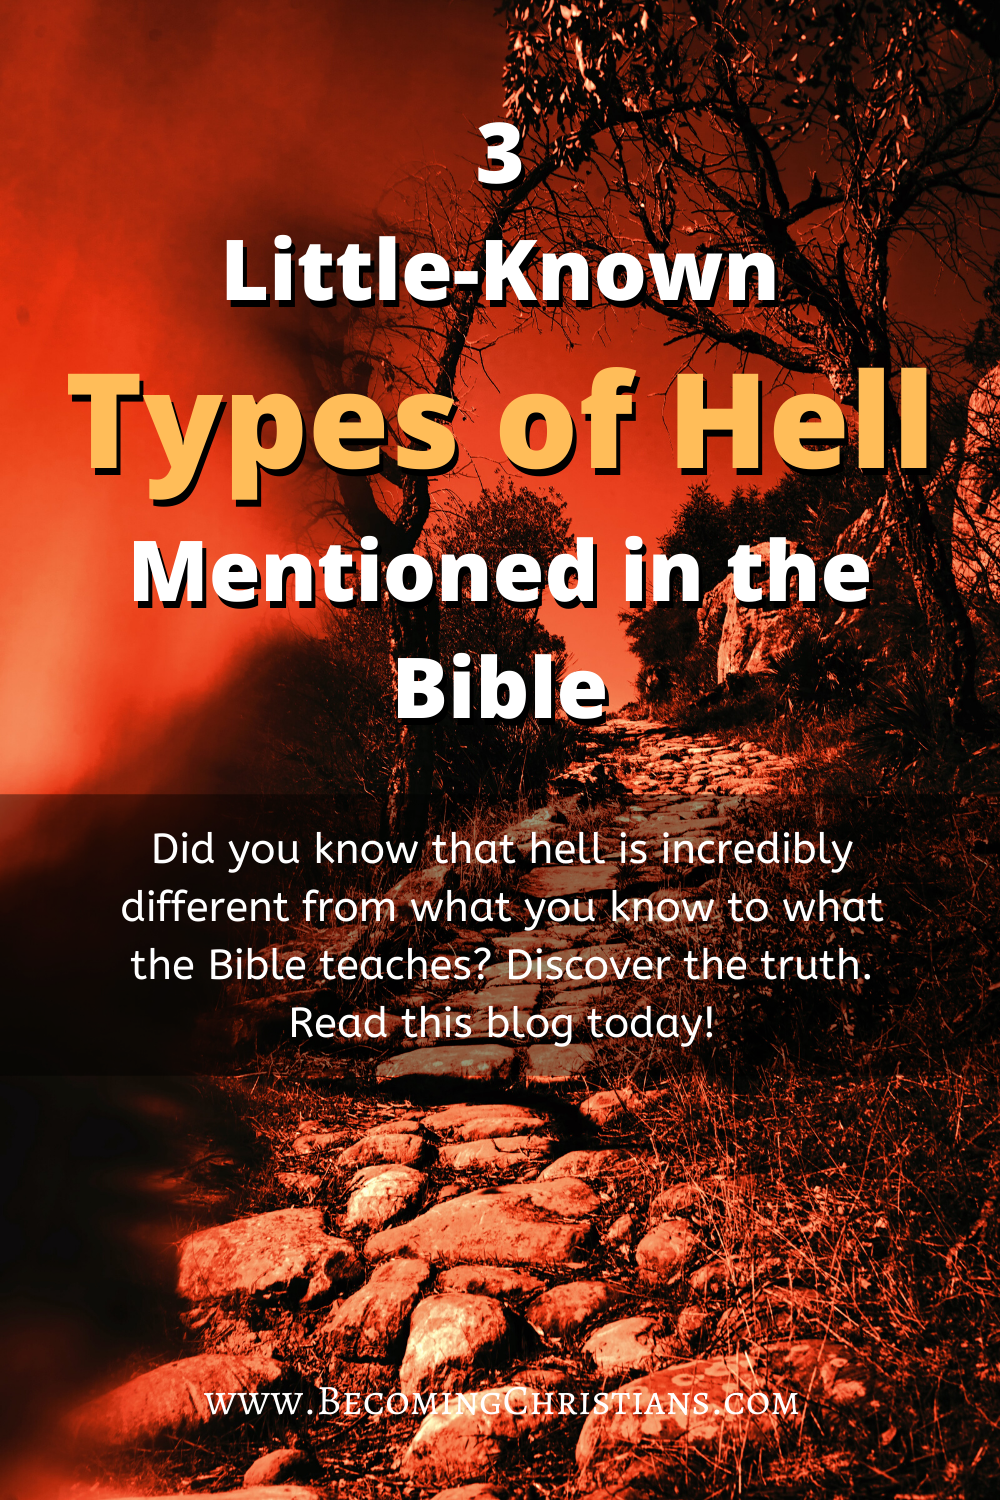 3 Little-Known Types of Hell Mentioned in the Bible